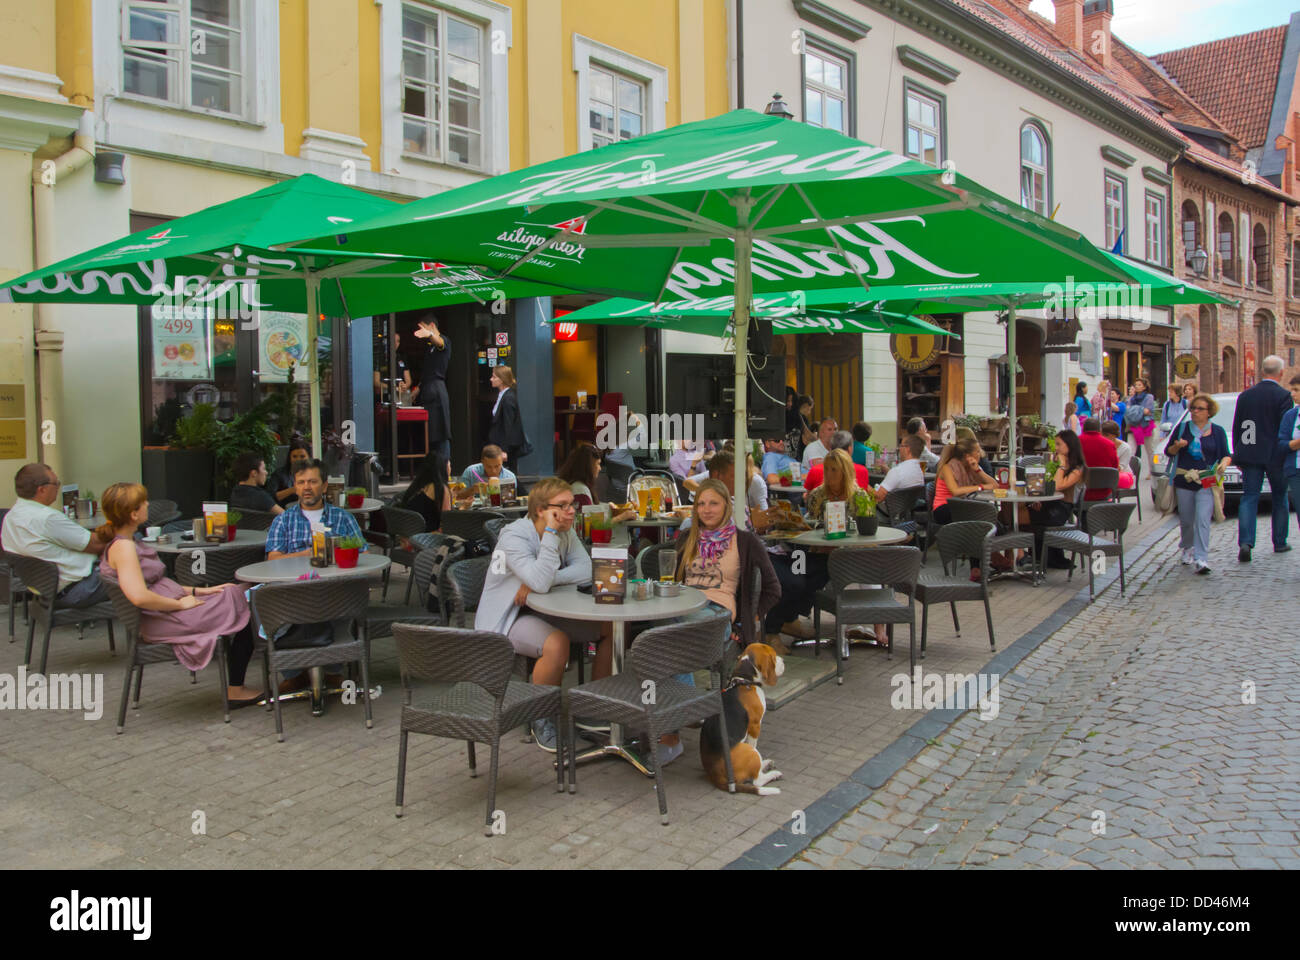 Cafe restaurant terrace Pilies gatve street old town Vilnius Lithuania Europe - Stock Image